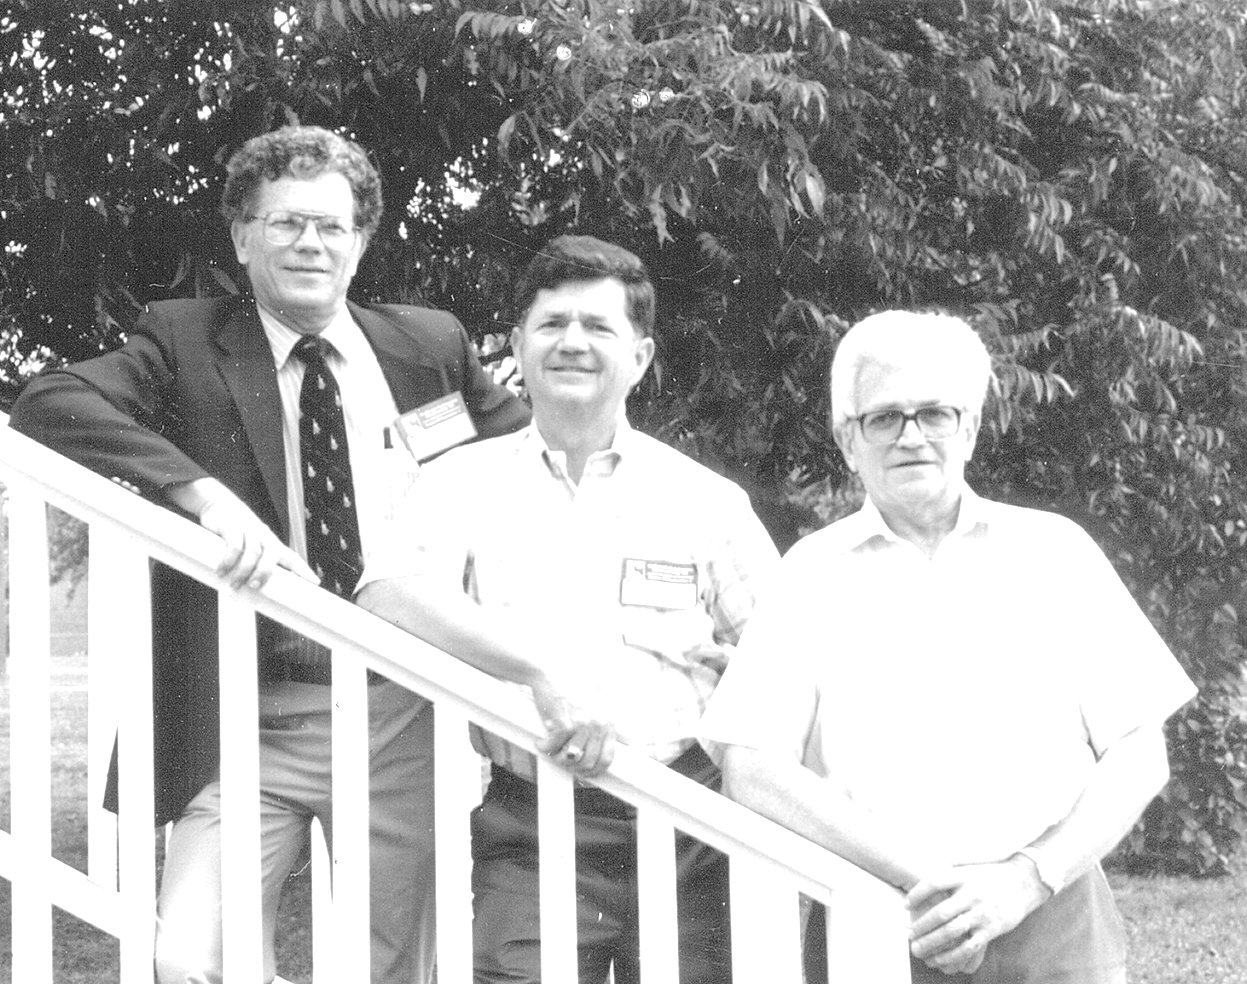 Long-time Bethel supporters and brothers (L to R): Joe Morris, Ray Morris and Jack Morris.